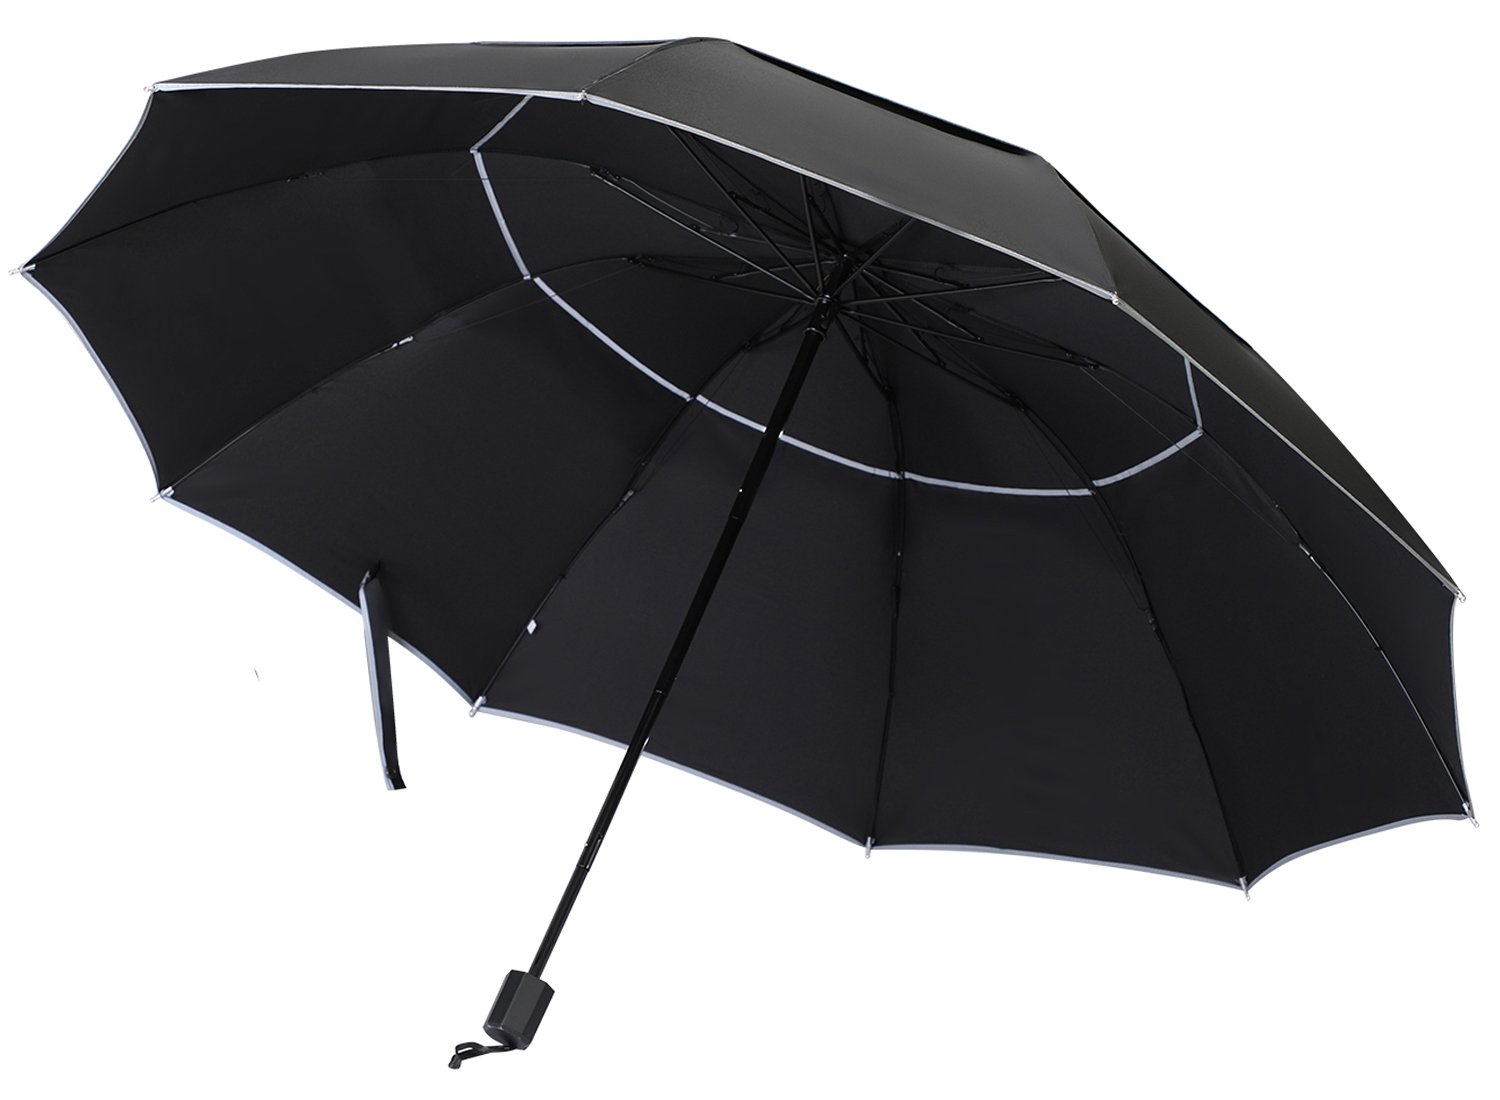 Windproof Travel Umbrella with Double Canopy Construction, Wind Resistant & Sunproof Umbrella for Business and Travels